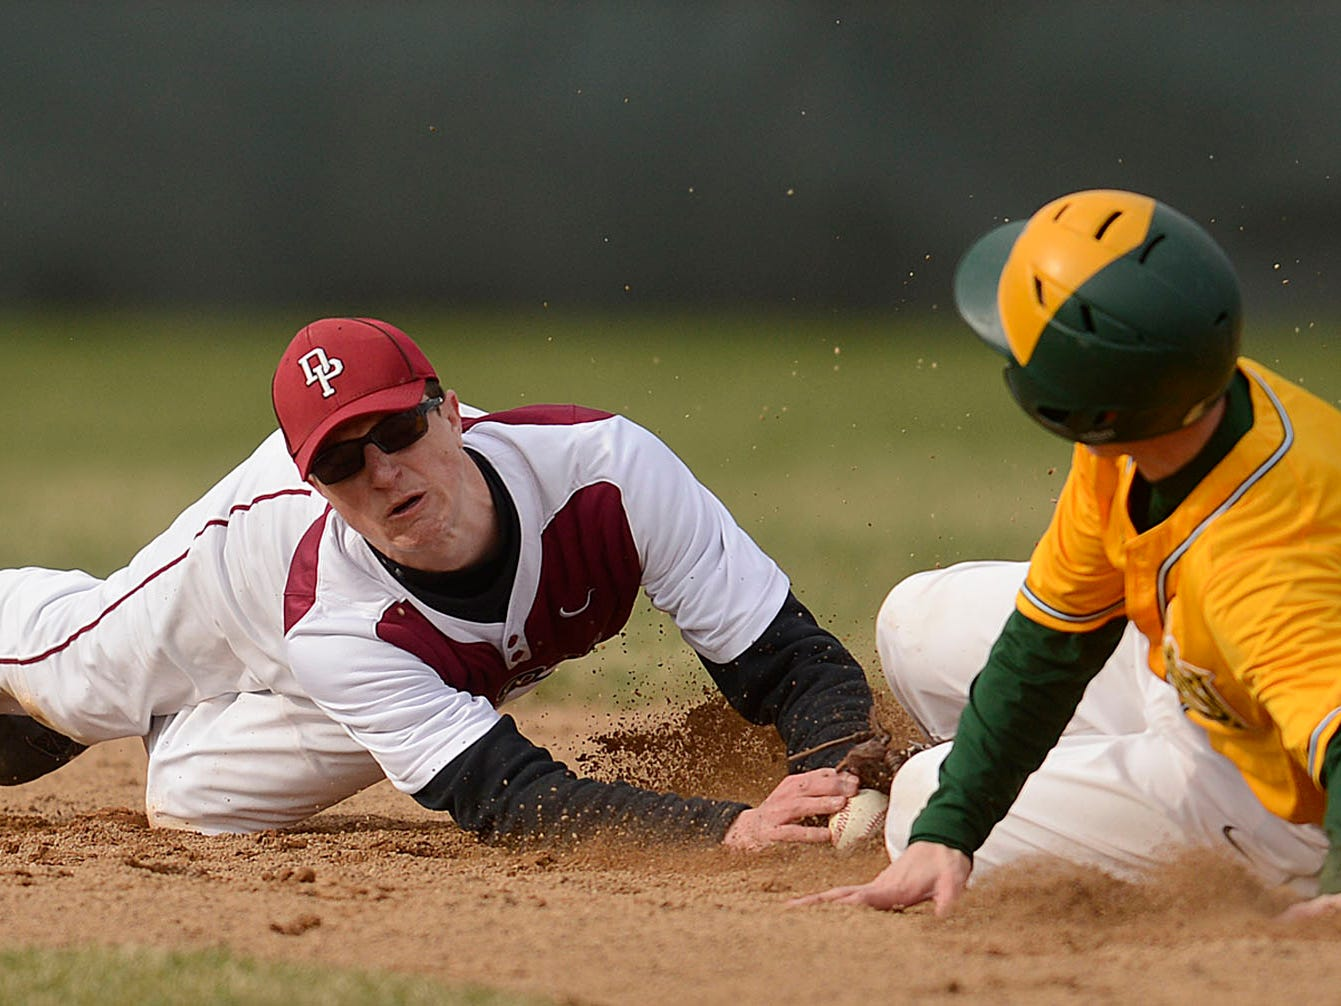 De Pere's Hunter Staniske (11) tries to tag out Ashwaubenon's Will Ark (23) during a play at second base in Tuesday's baseball game at Ashwaubomay Park in Ashwaubenon. Evan Siegle/Press-Gazette Media